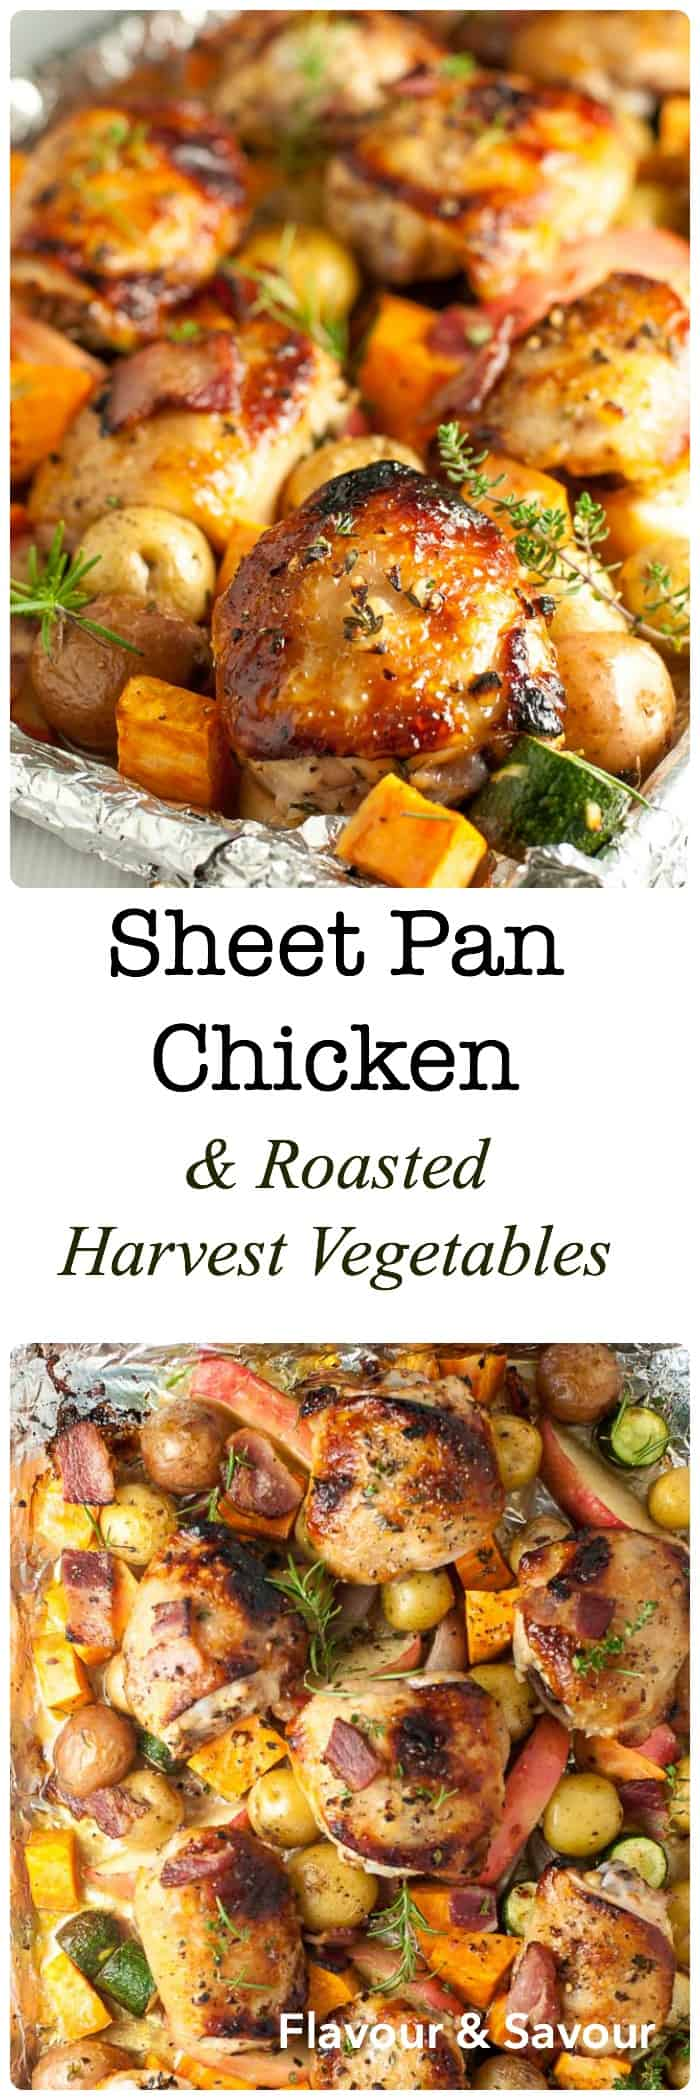 This Sheet Pan Chicken and Roasted Harvest Vegetables is flavoured with bacon and rosemary. Crispy chicken and roasted vegetables make a complete meal, made in one pan, baked in just 30 minutes. |www.flavourandsavour.com